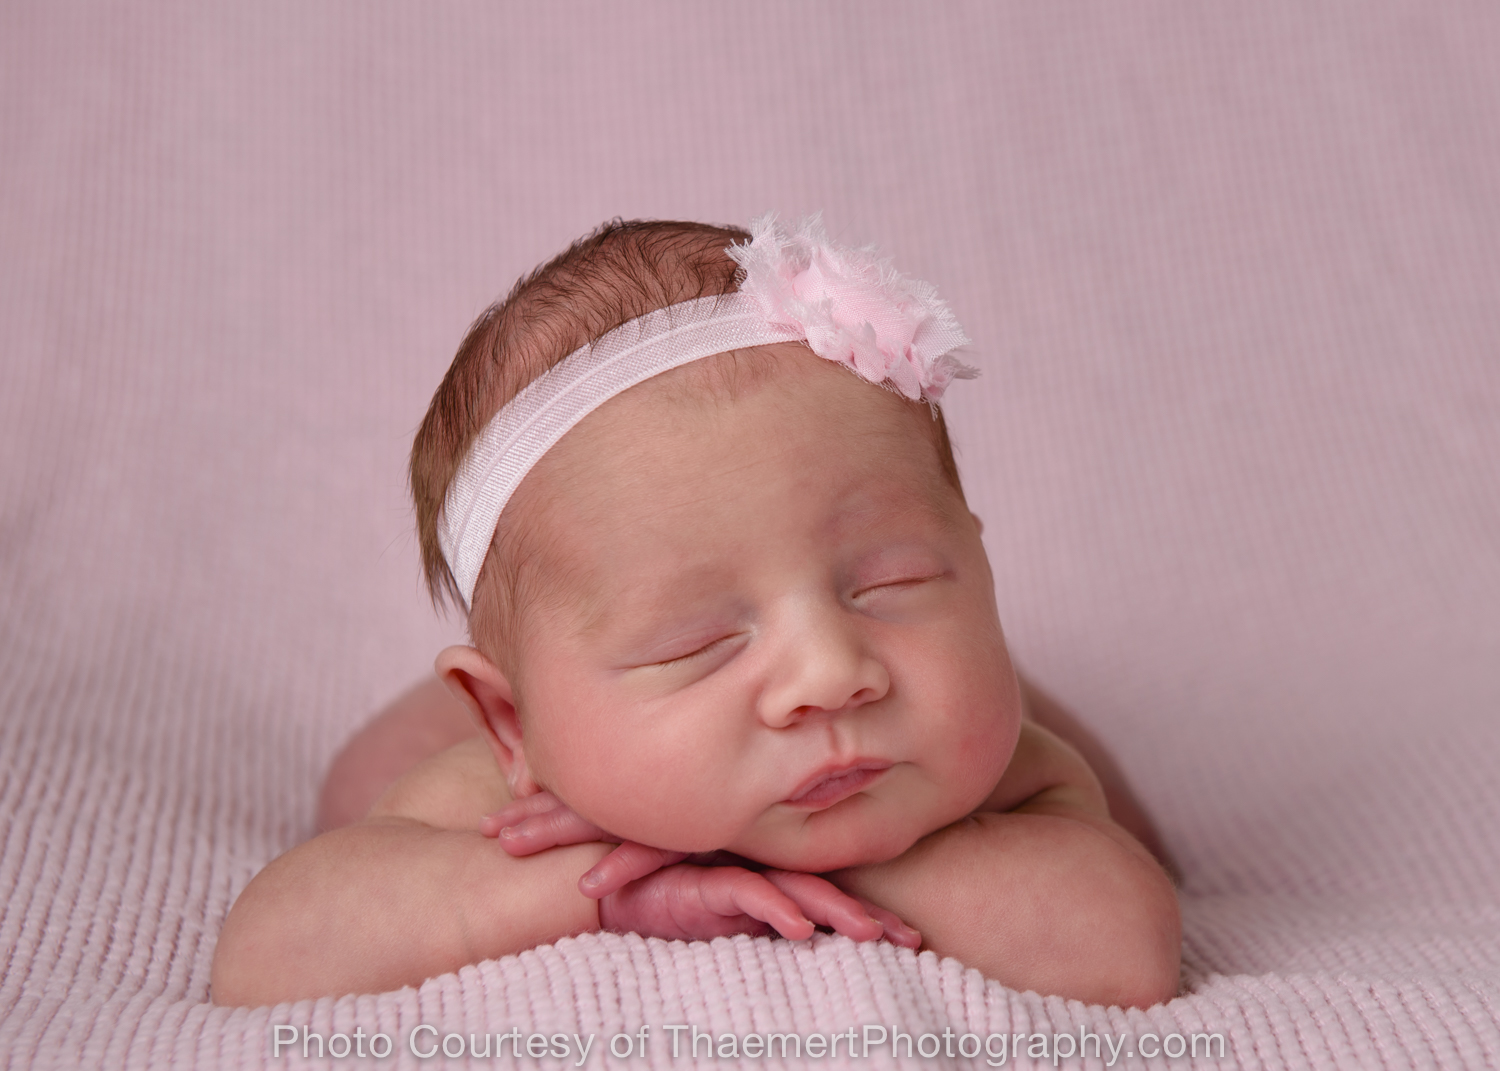 St Charles Newborn Photographer Baby Girl on Pink Blanket